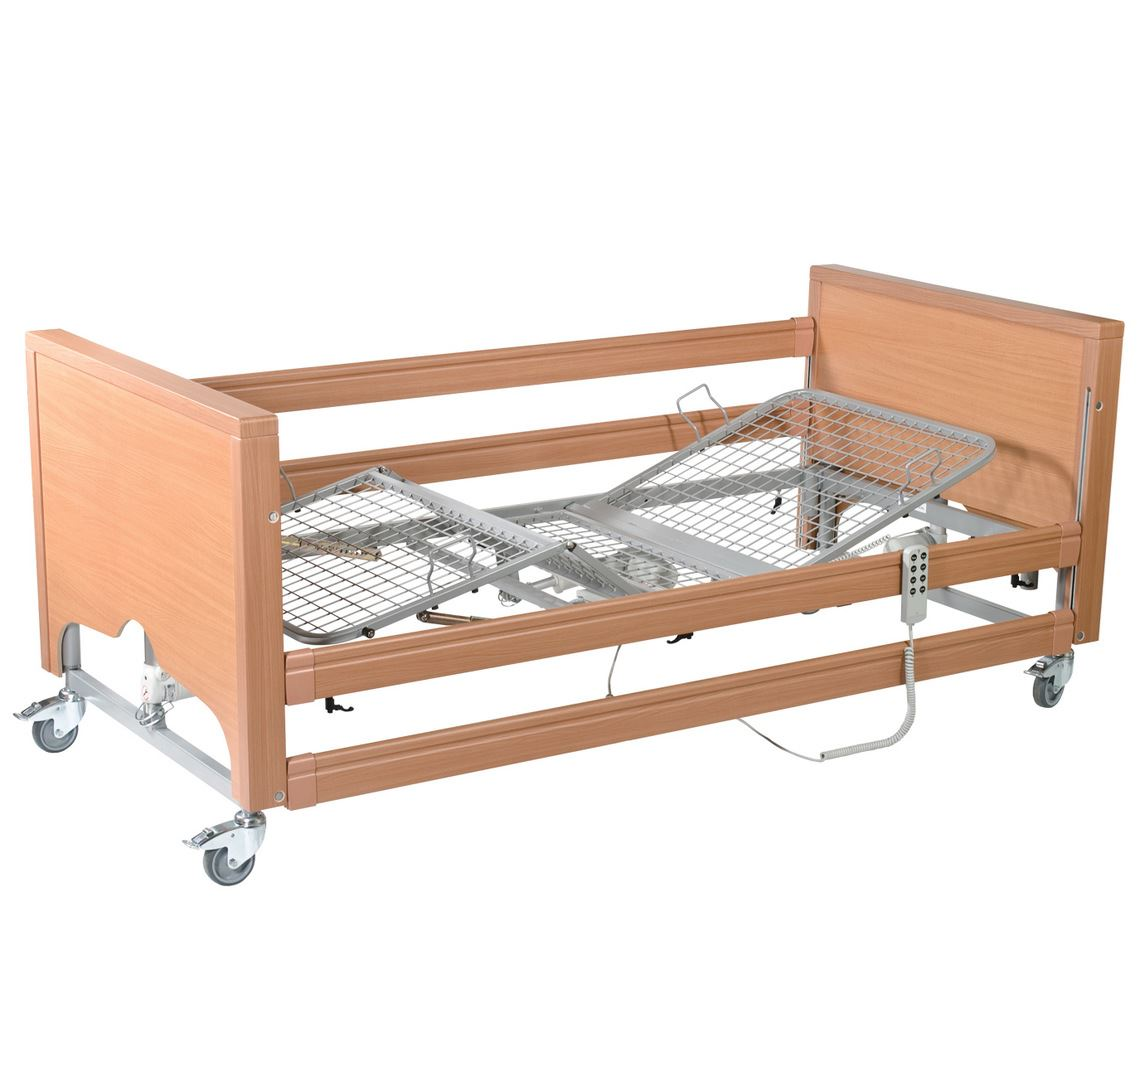 Picture of Casa Med Classic FS Low Profiling Bed - Beech with Metal Mesh and Side Rails